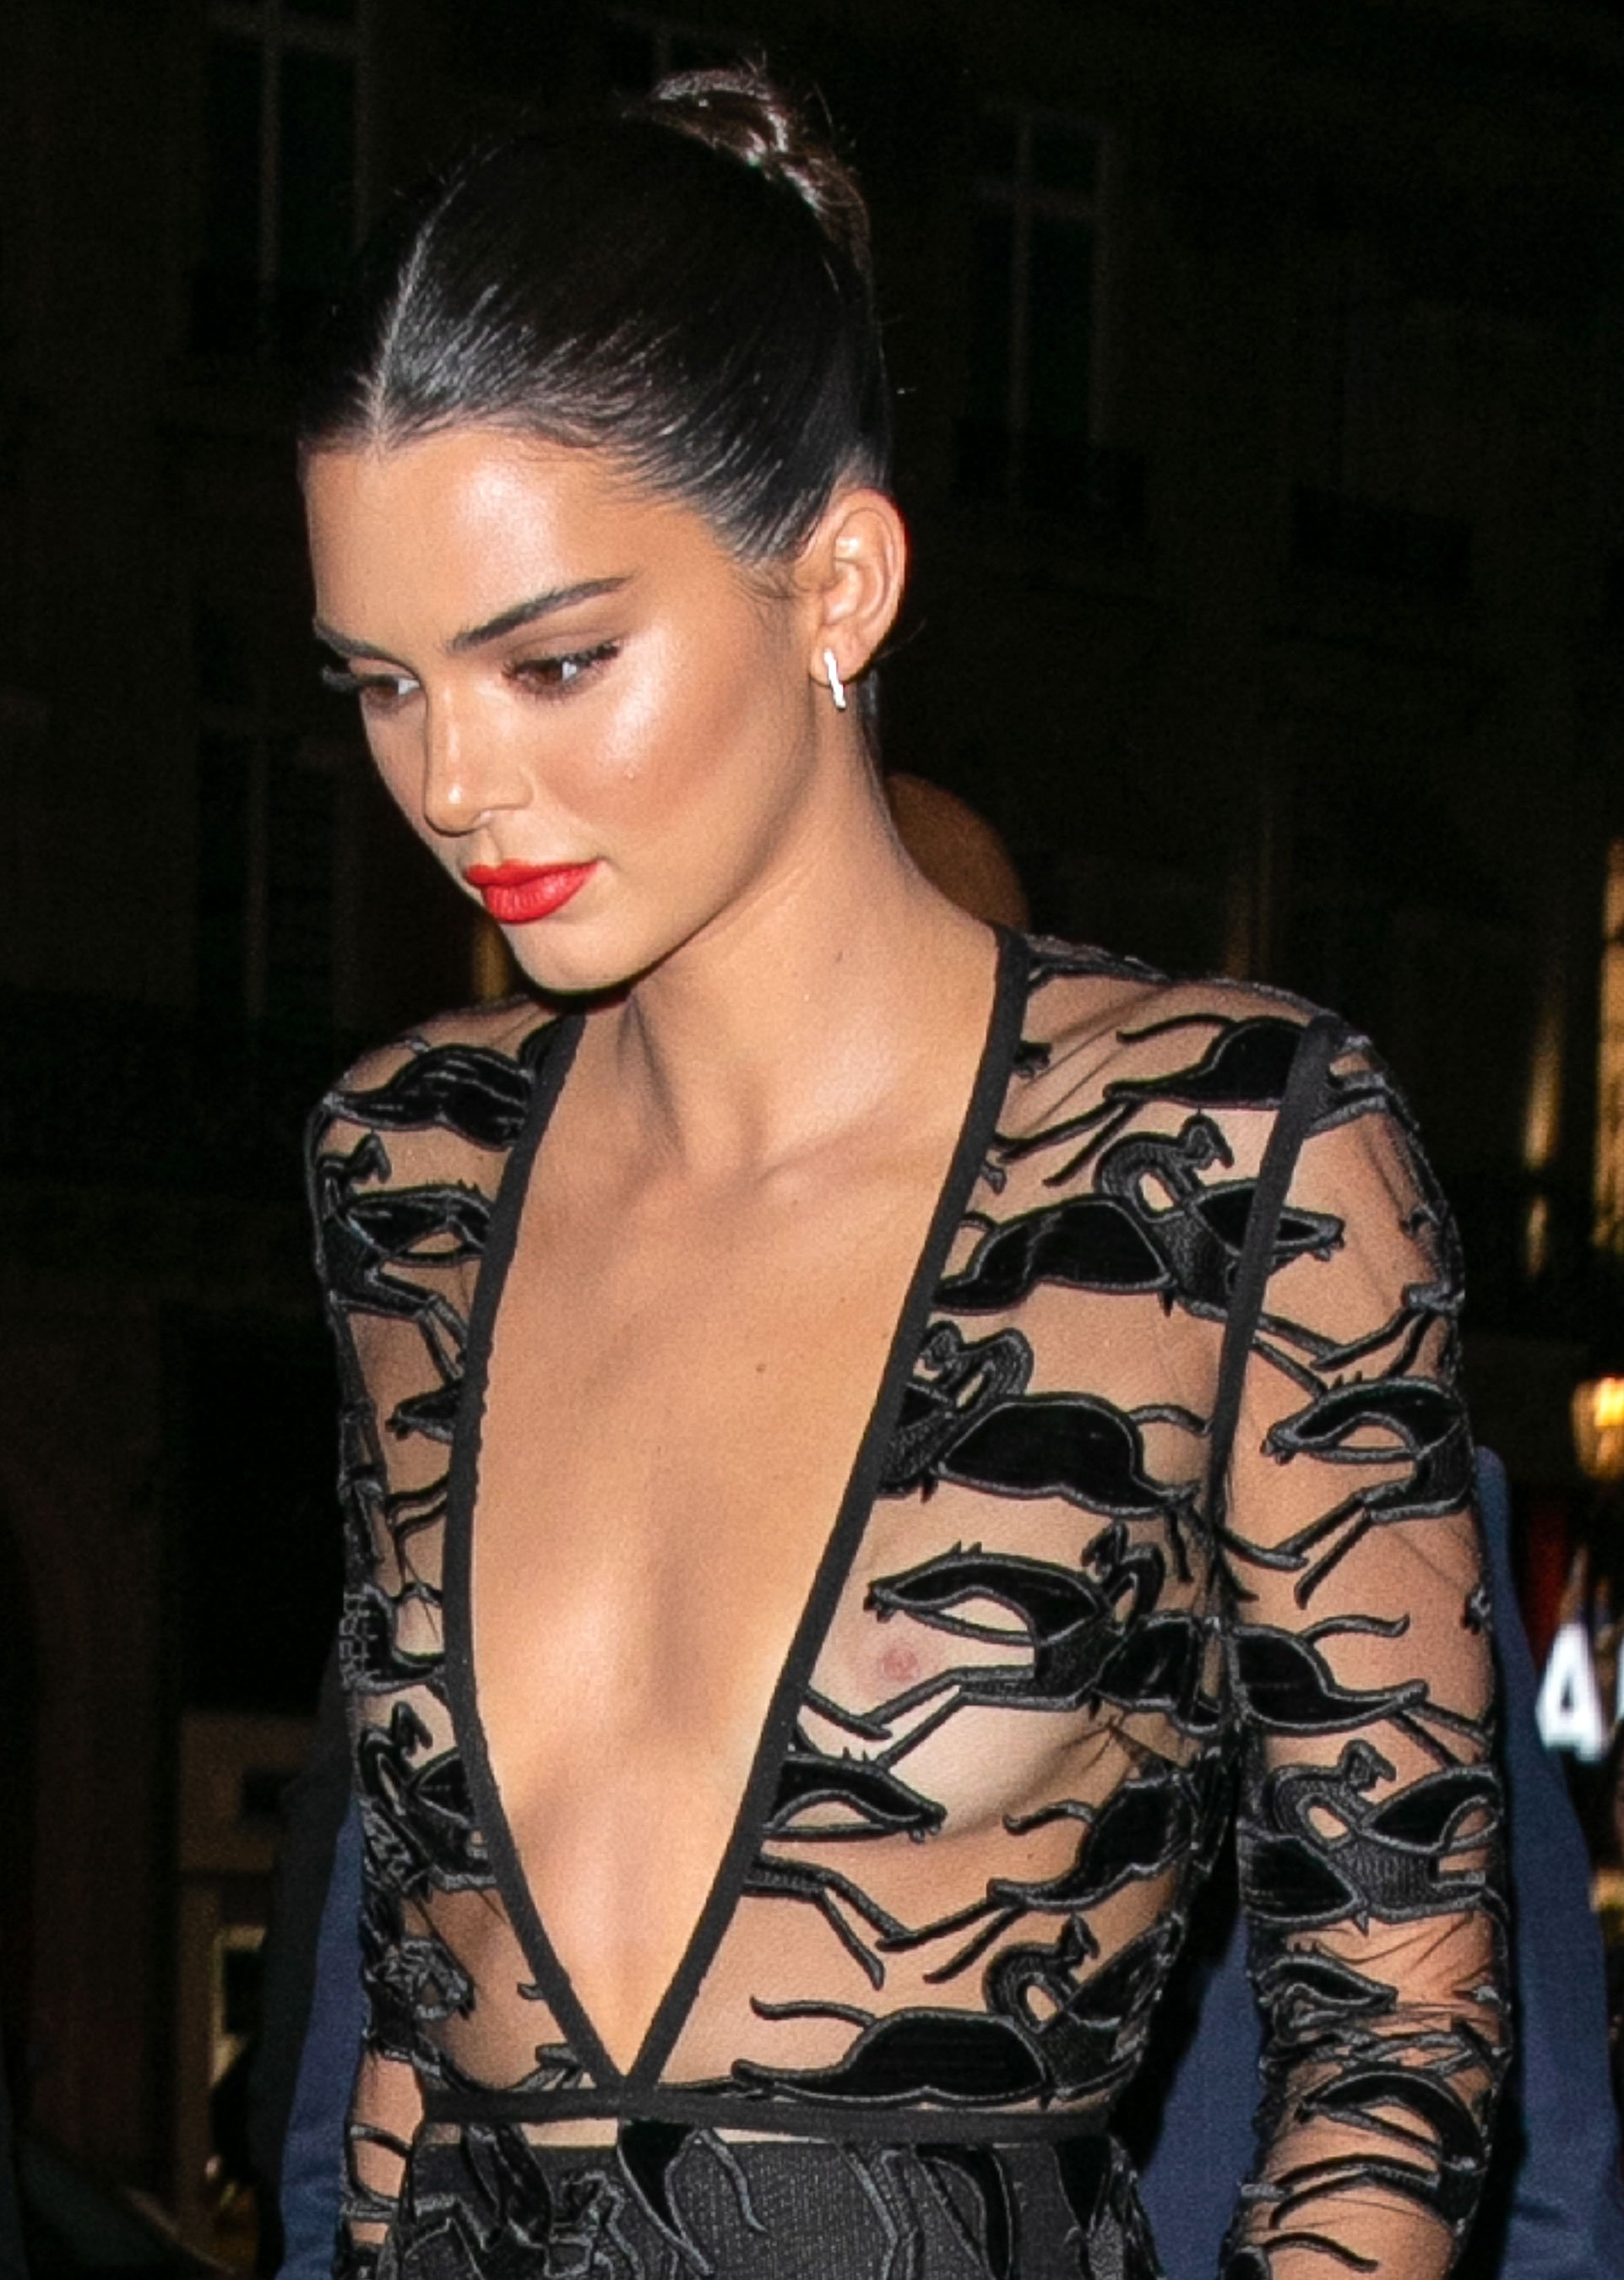 Kendall Jenner Freed Her Nipples in a Sheer Top at a Paris Party, Plus More of Her Braless Red Carpet Moments